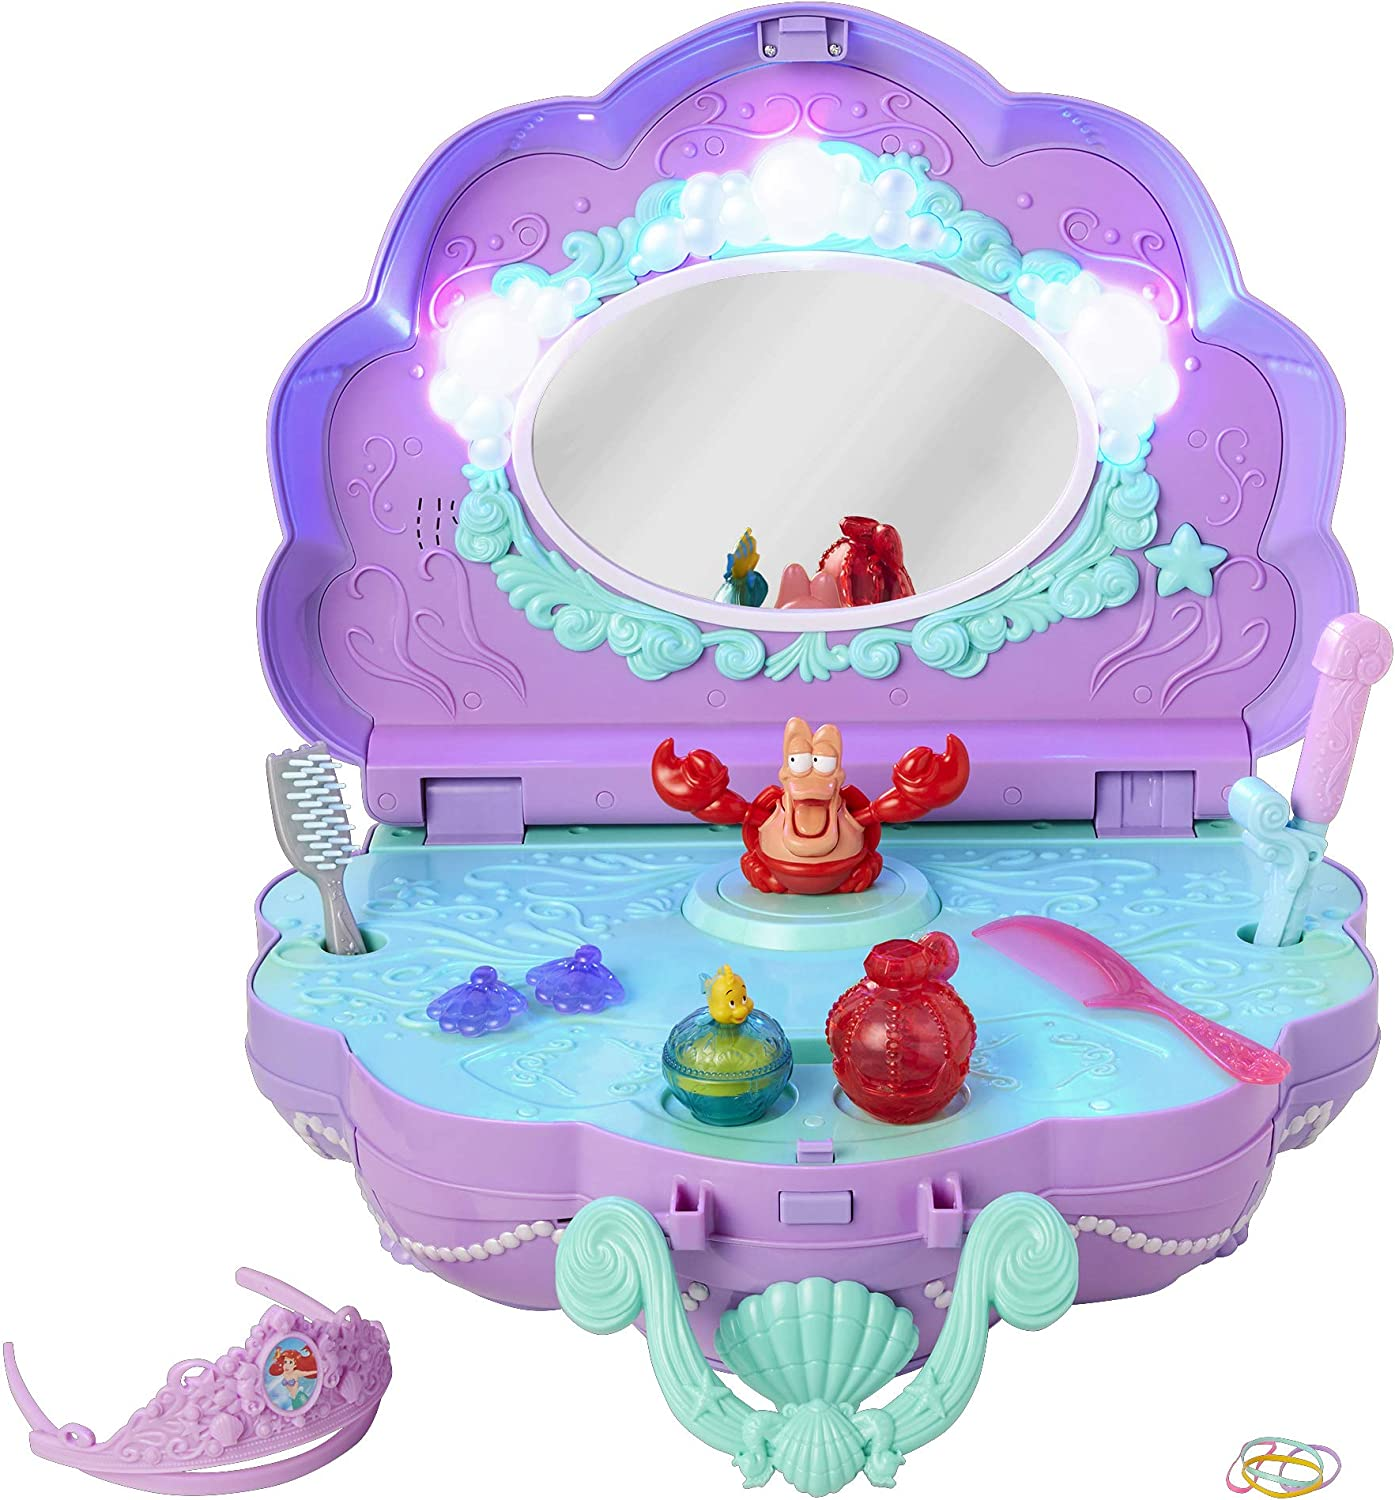 Amazon Com Disney Princess Ariel S Vanity Under The Sea Tabletop Music Light S Vanity For Girls Ages 3 Toys Games